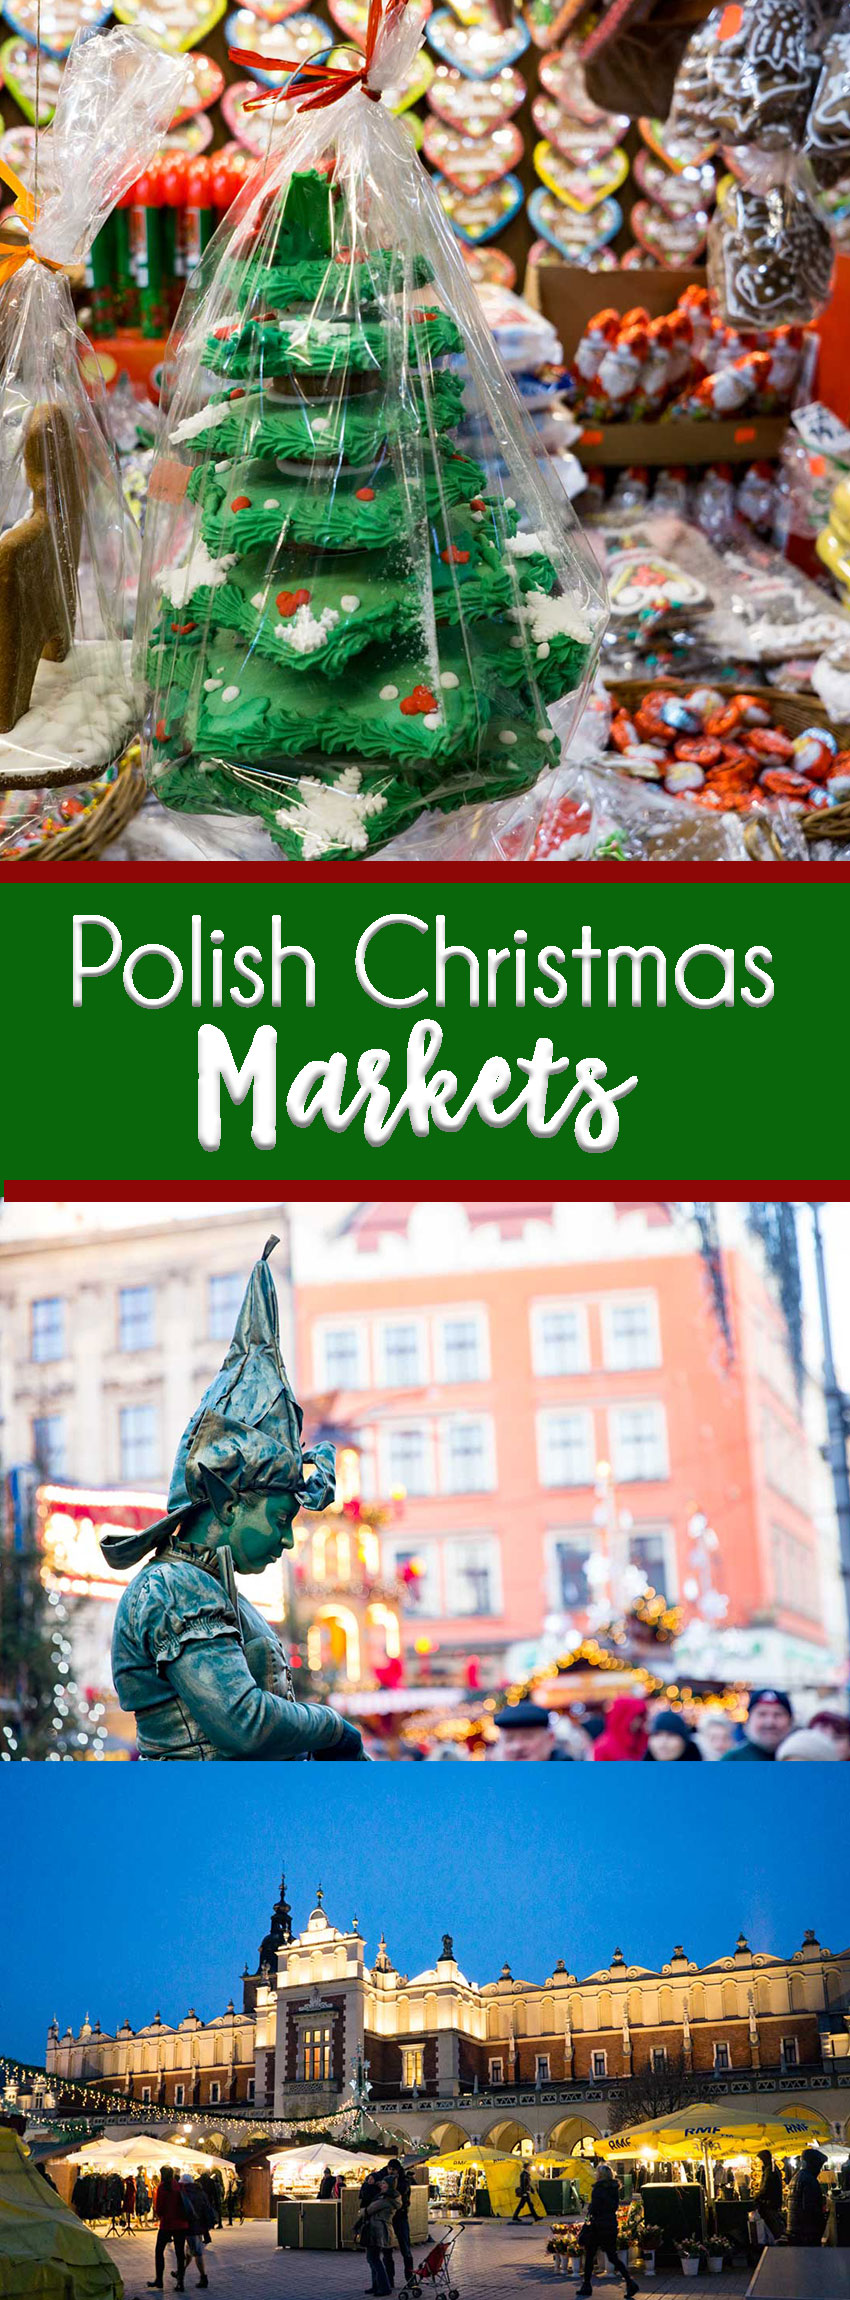 Delicious Polish Christmas Markets, the best Christmas markets in Europe